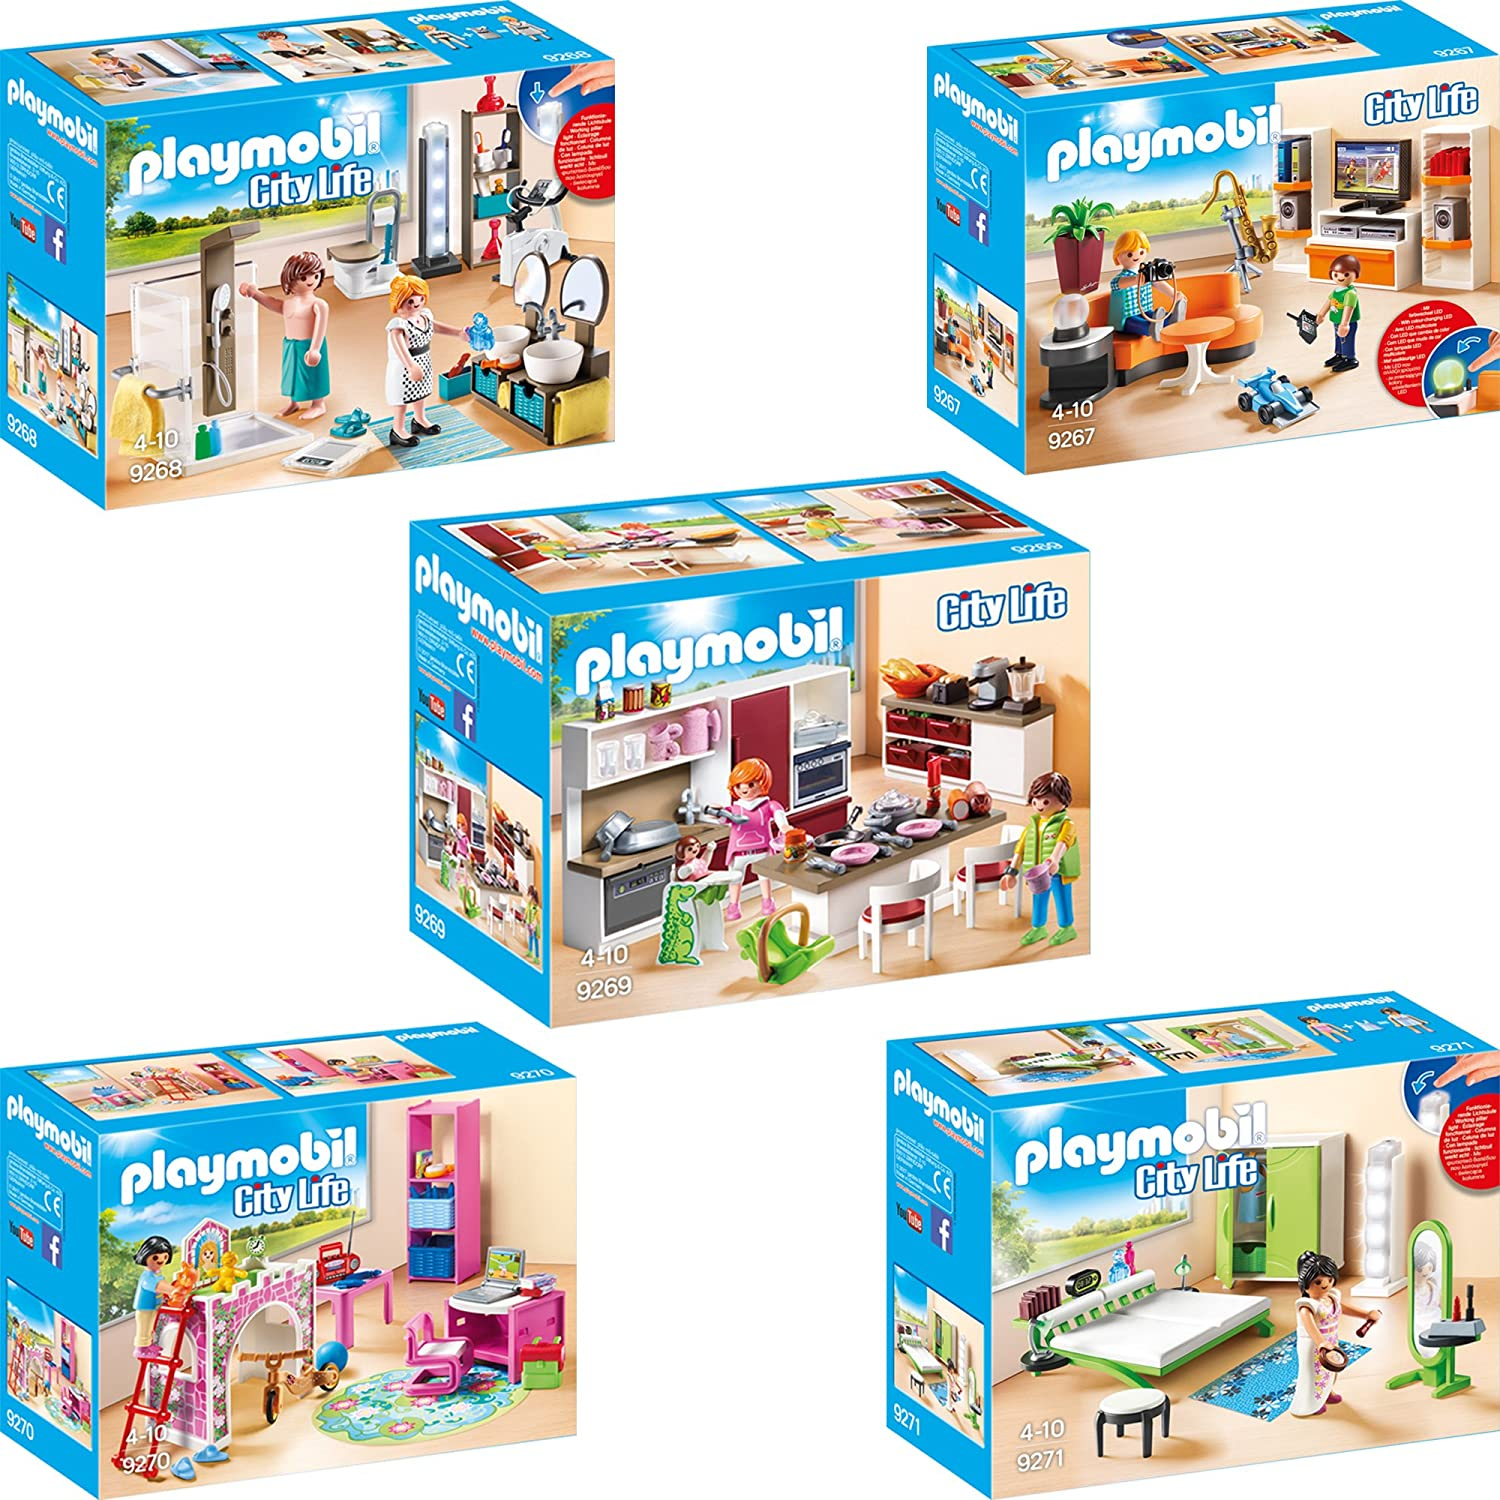 schlafzimmer playmobil w sche im schlafzimmer trocknen hotel kopfkissen kommode bunt d nisches. Black Bedroom Furniture Sets. Home Design Ideas